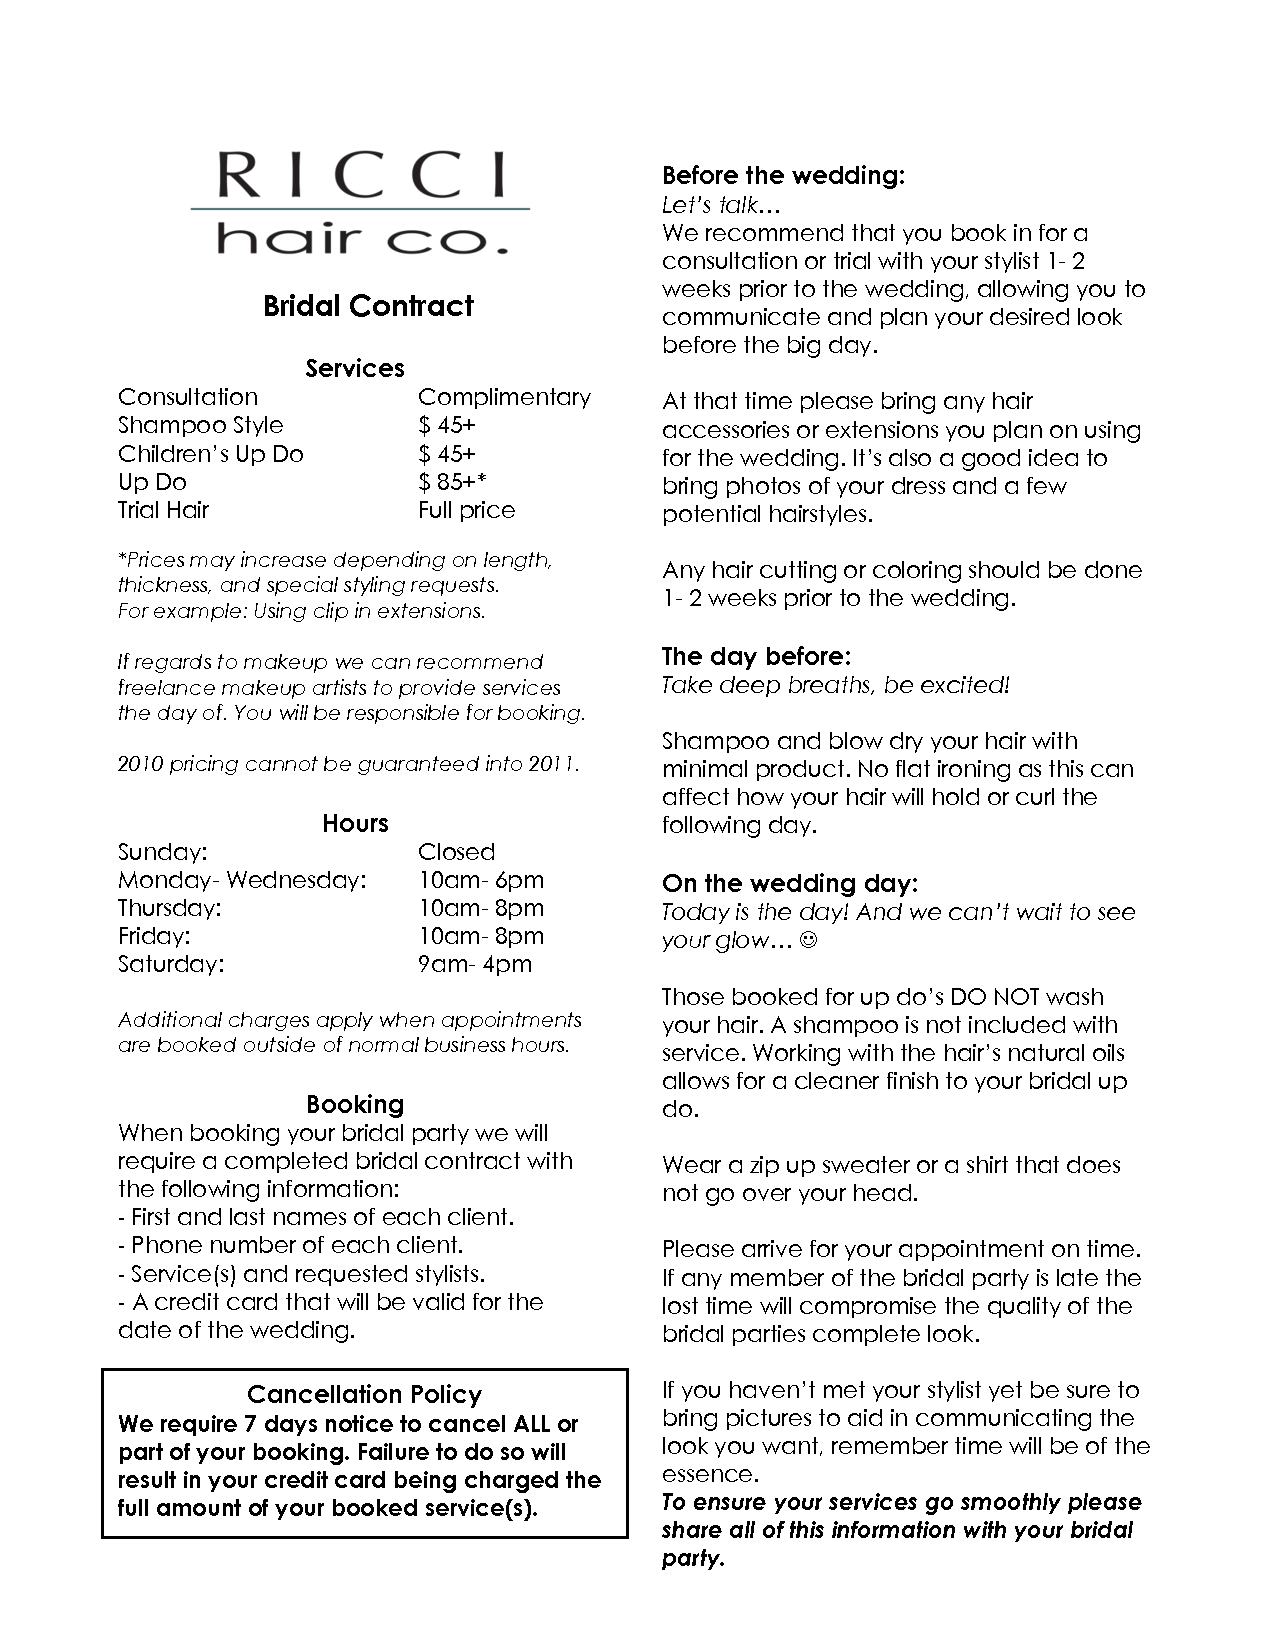 Bridalhaircotract  Bridal Hair Stylist Contract  Business Cards